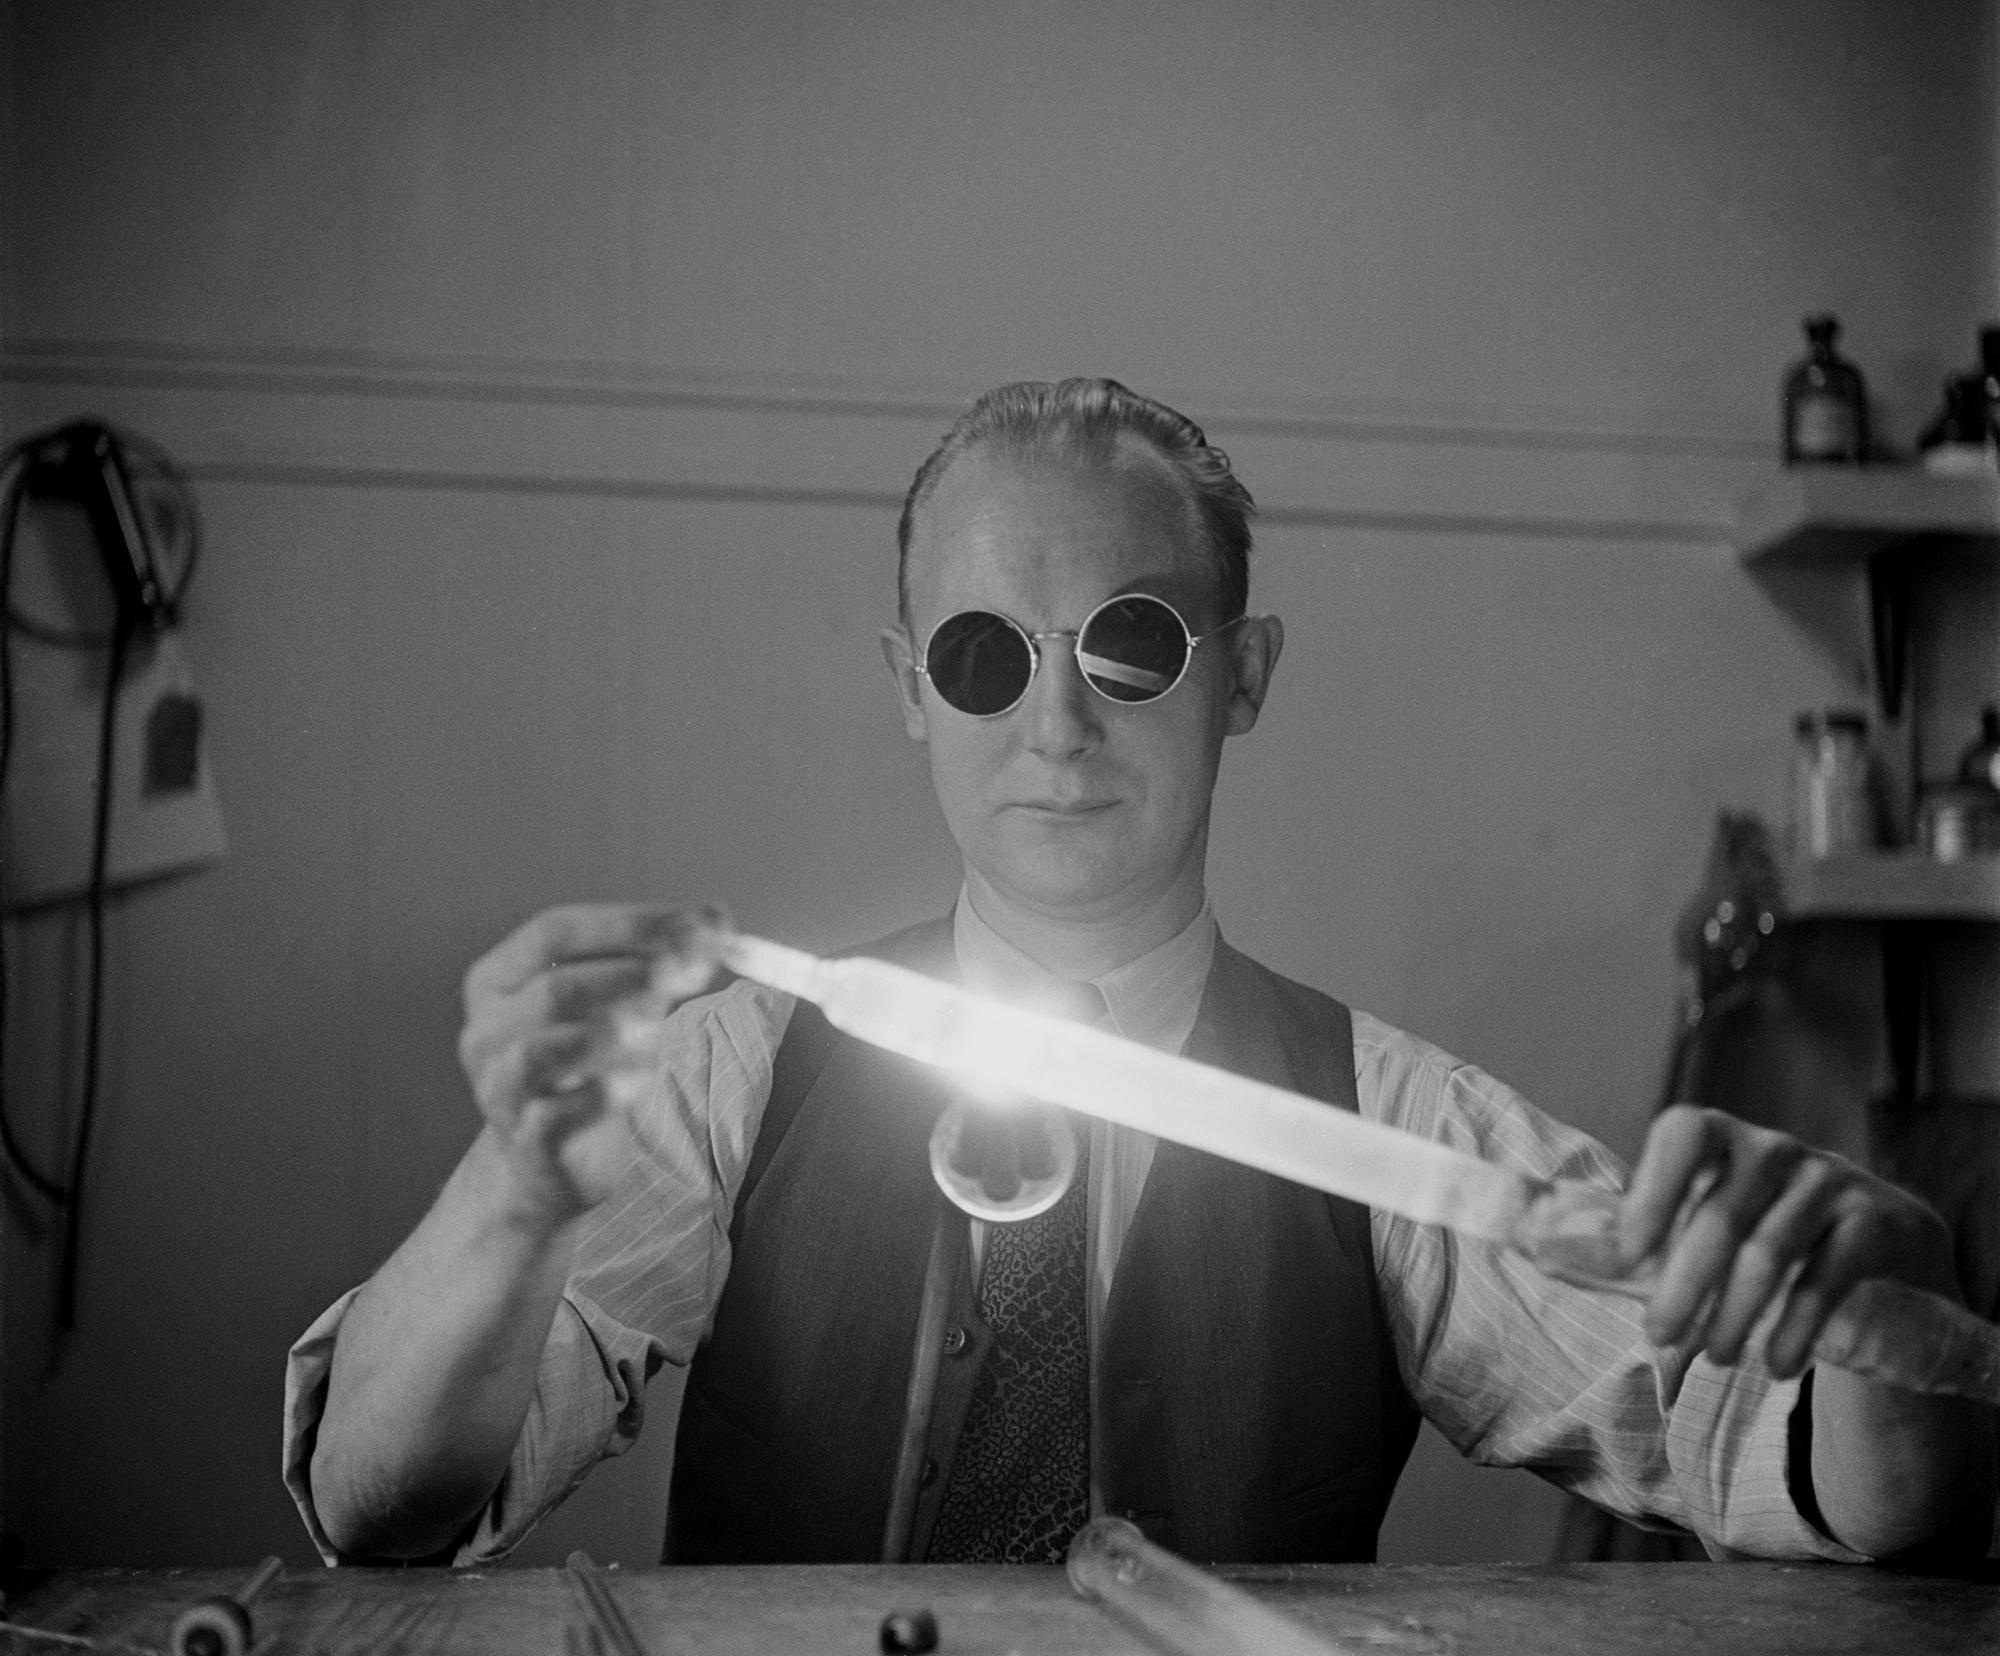 In a black and white photo a man is sitting at a desk and holding a glowing tube. He is wearing dark, round glasses.